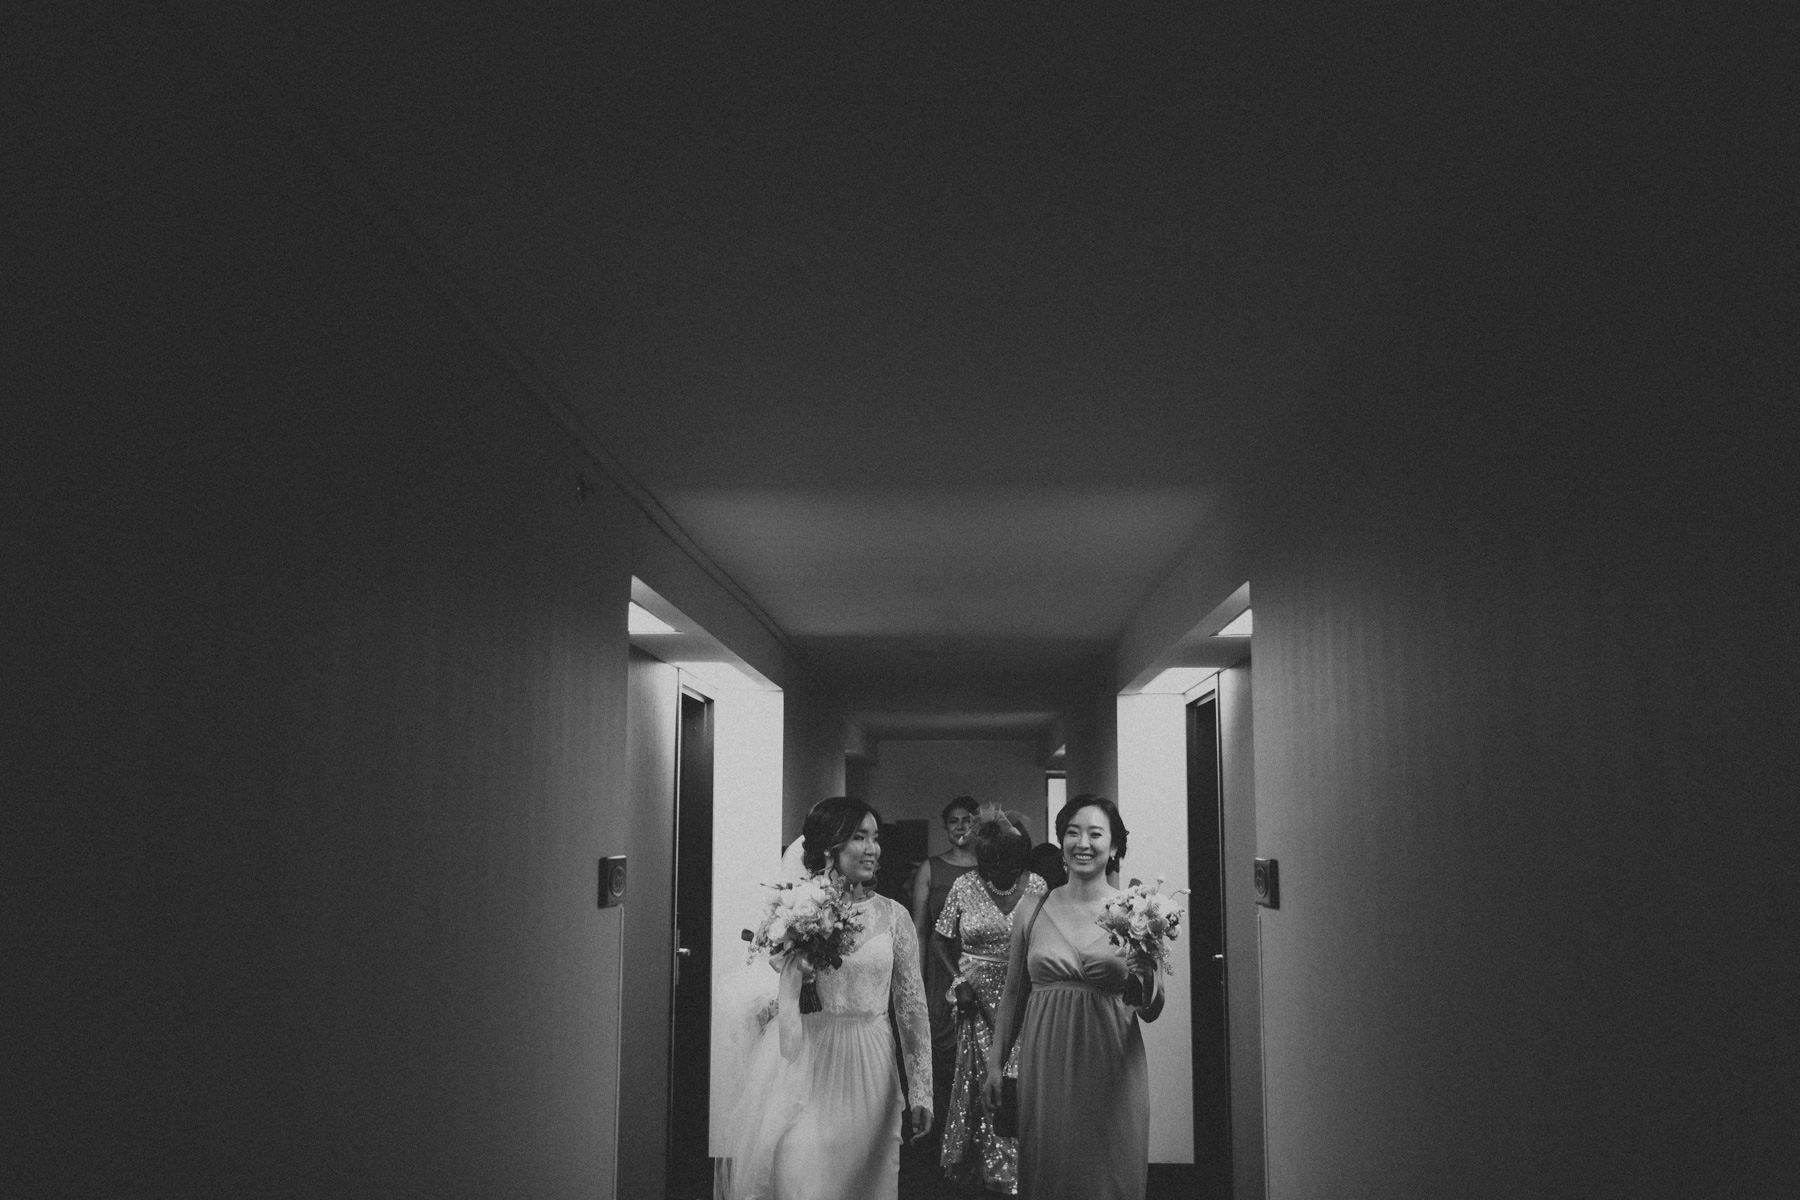 Malaparte-wedding-photography-Toronto-by-Sam-Wong-of-Artanis-Collective-Mary-Anne-Bourne_013.jpg